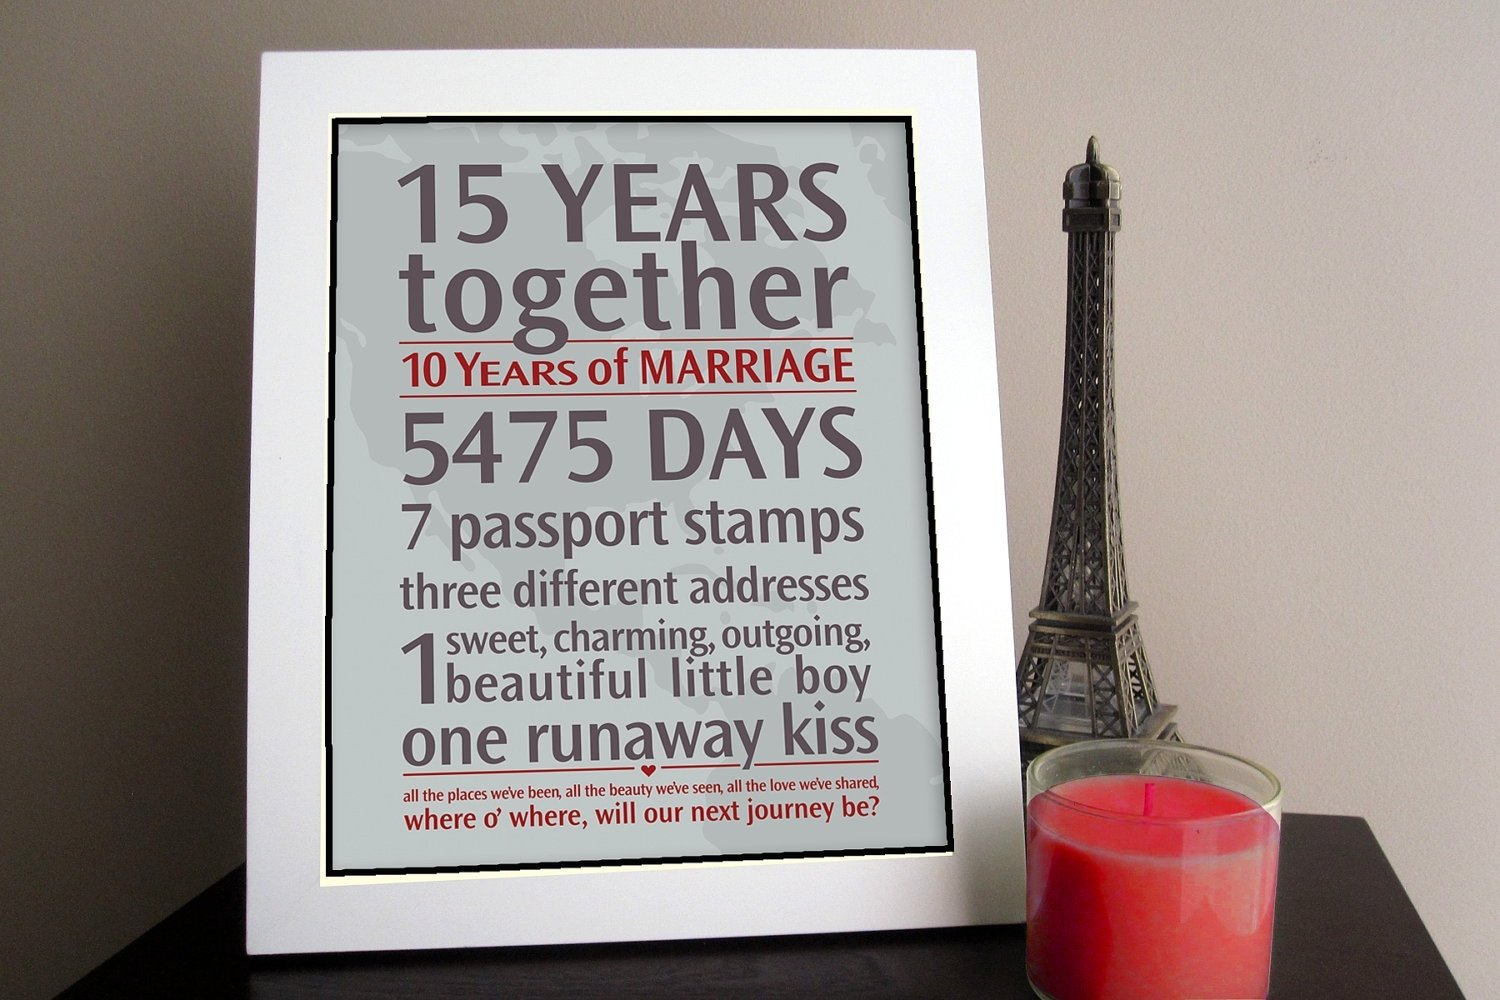 10 Pretty Anniversary Gift Ideas For Parents wedding anniversary gifts diy wedding anniversary gifts for parents 1 2020